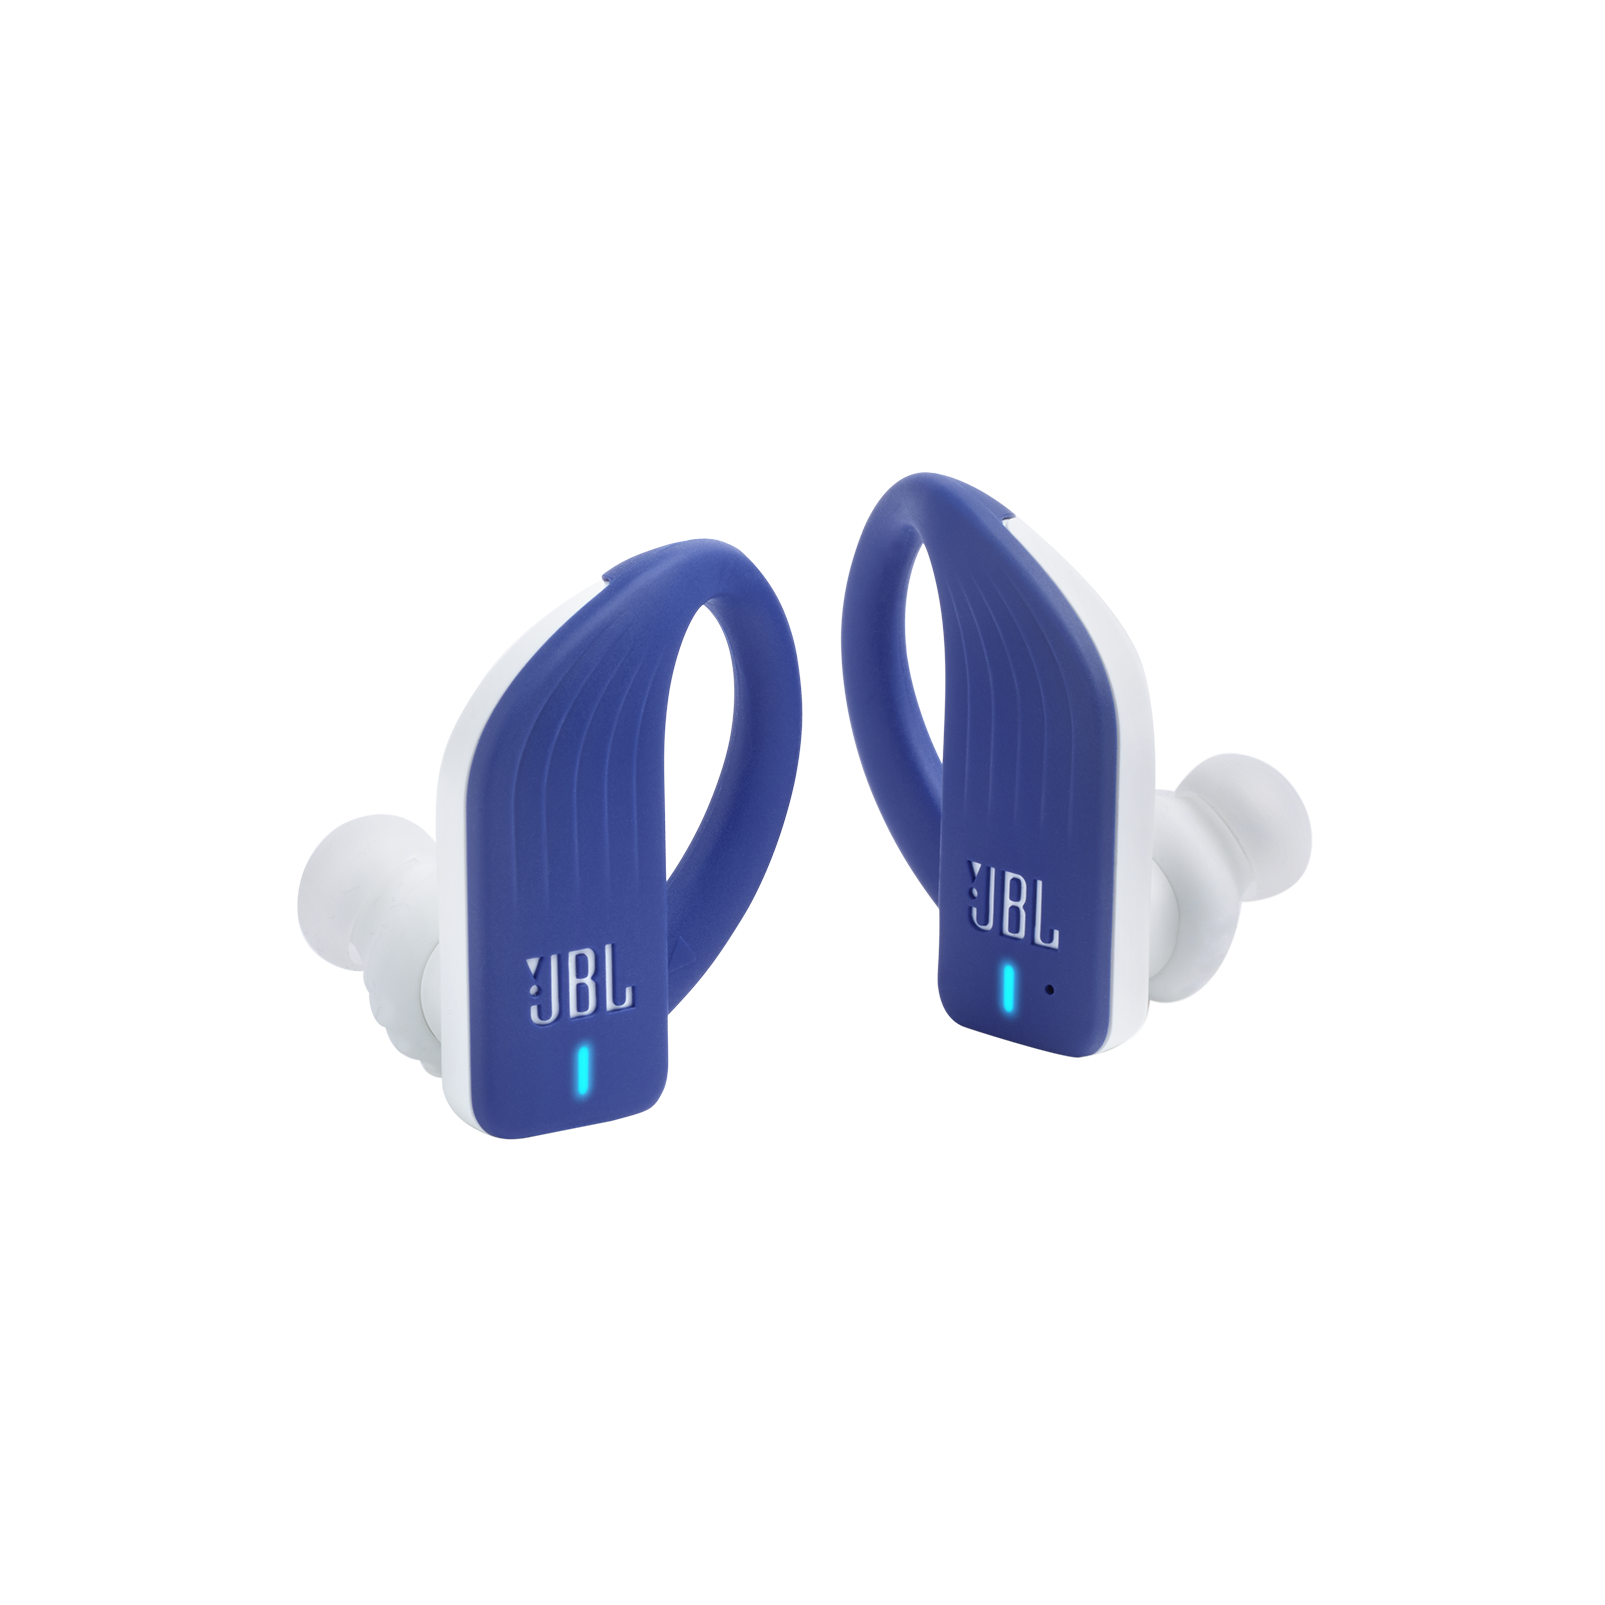 JBL Endurance PEAK - Blue - Waterproof True Wireless In-Ear Sport Headphones - Detailshot 3